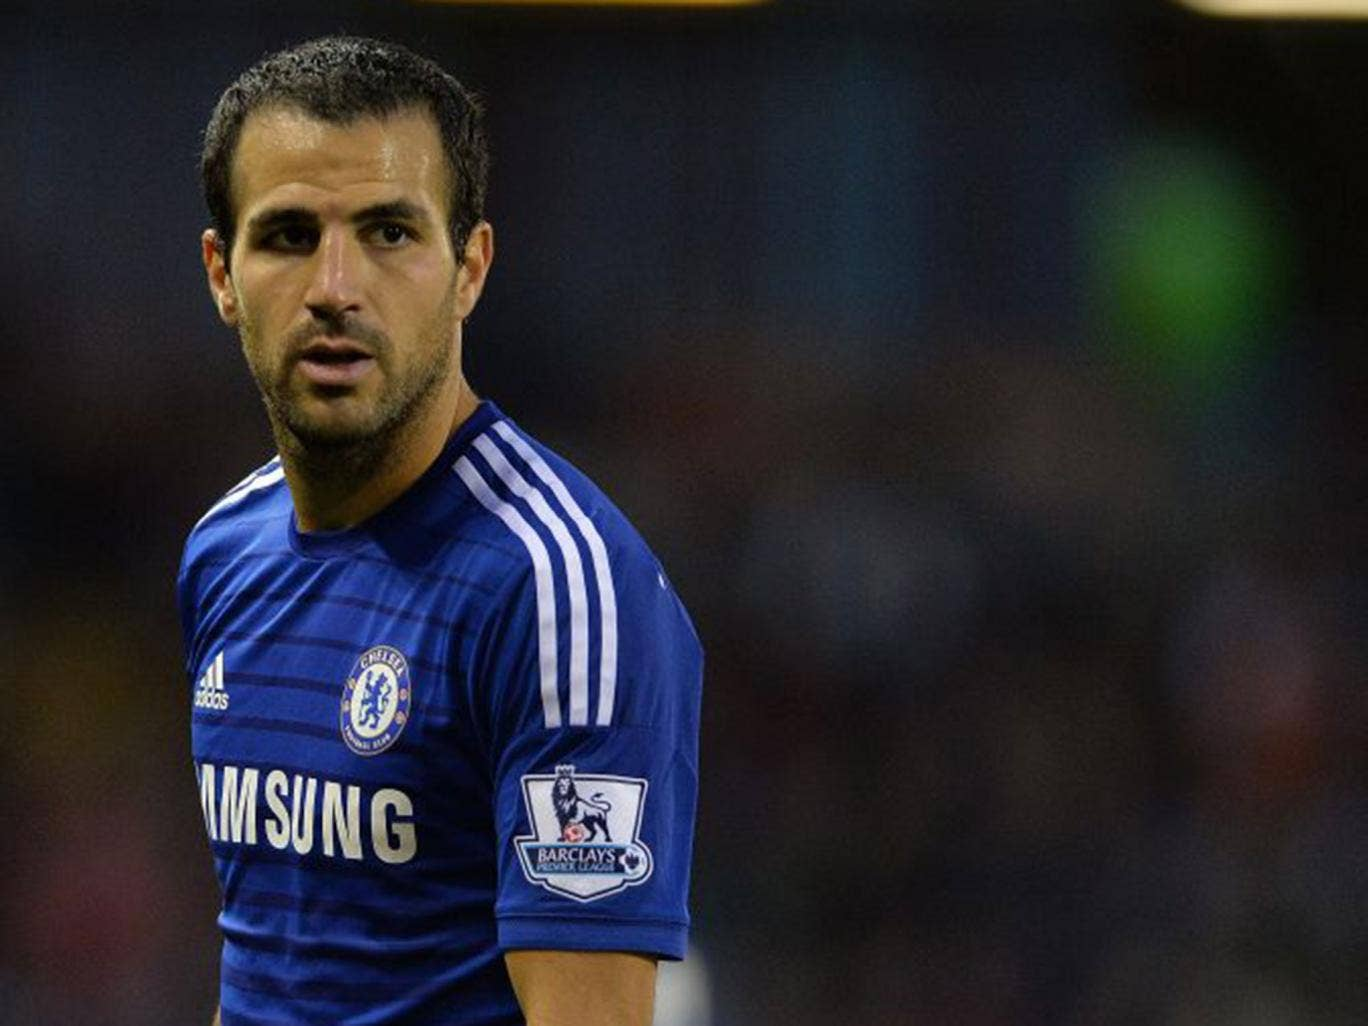 Did Arsenal make a mistake not signing Cesc Fabregas after his sensational debut for Chelsea?